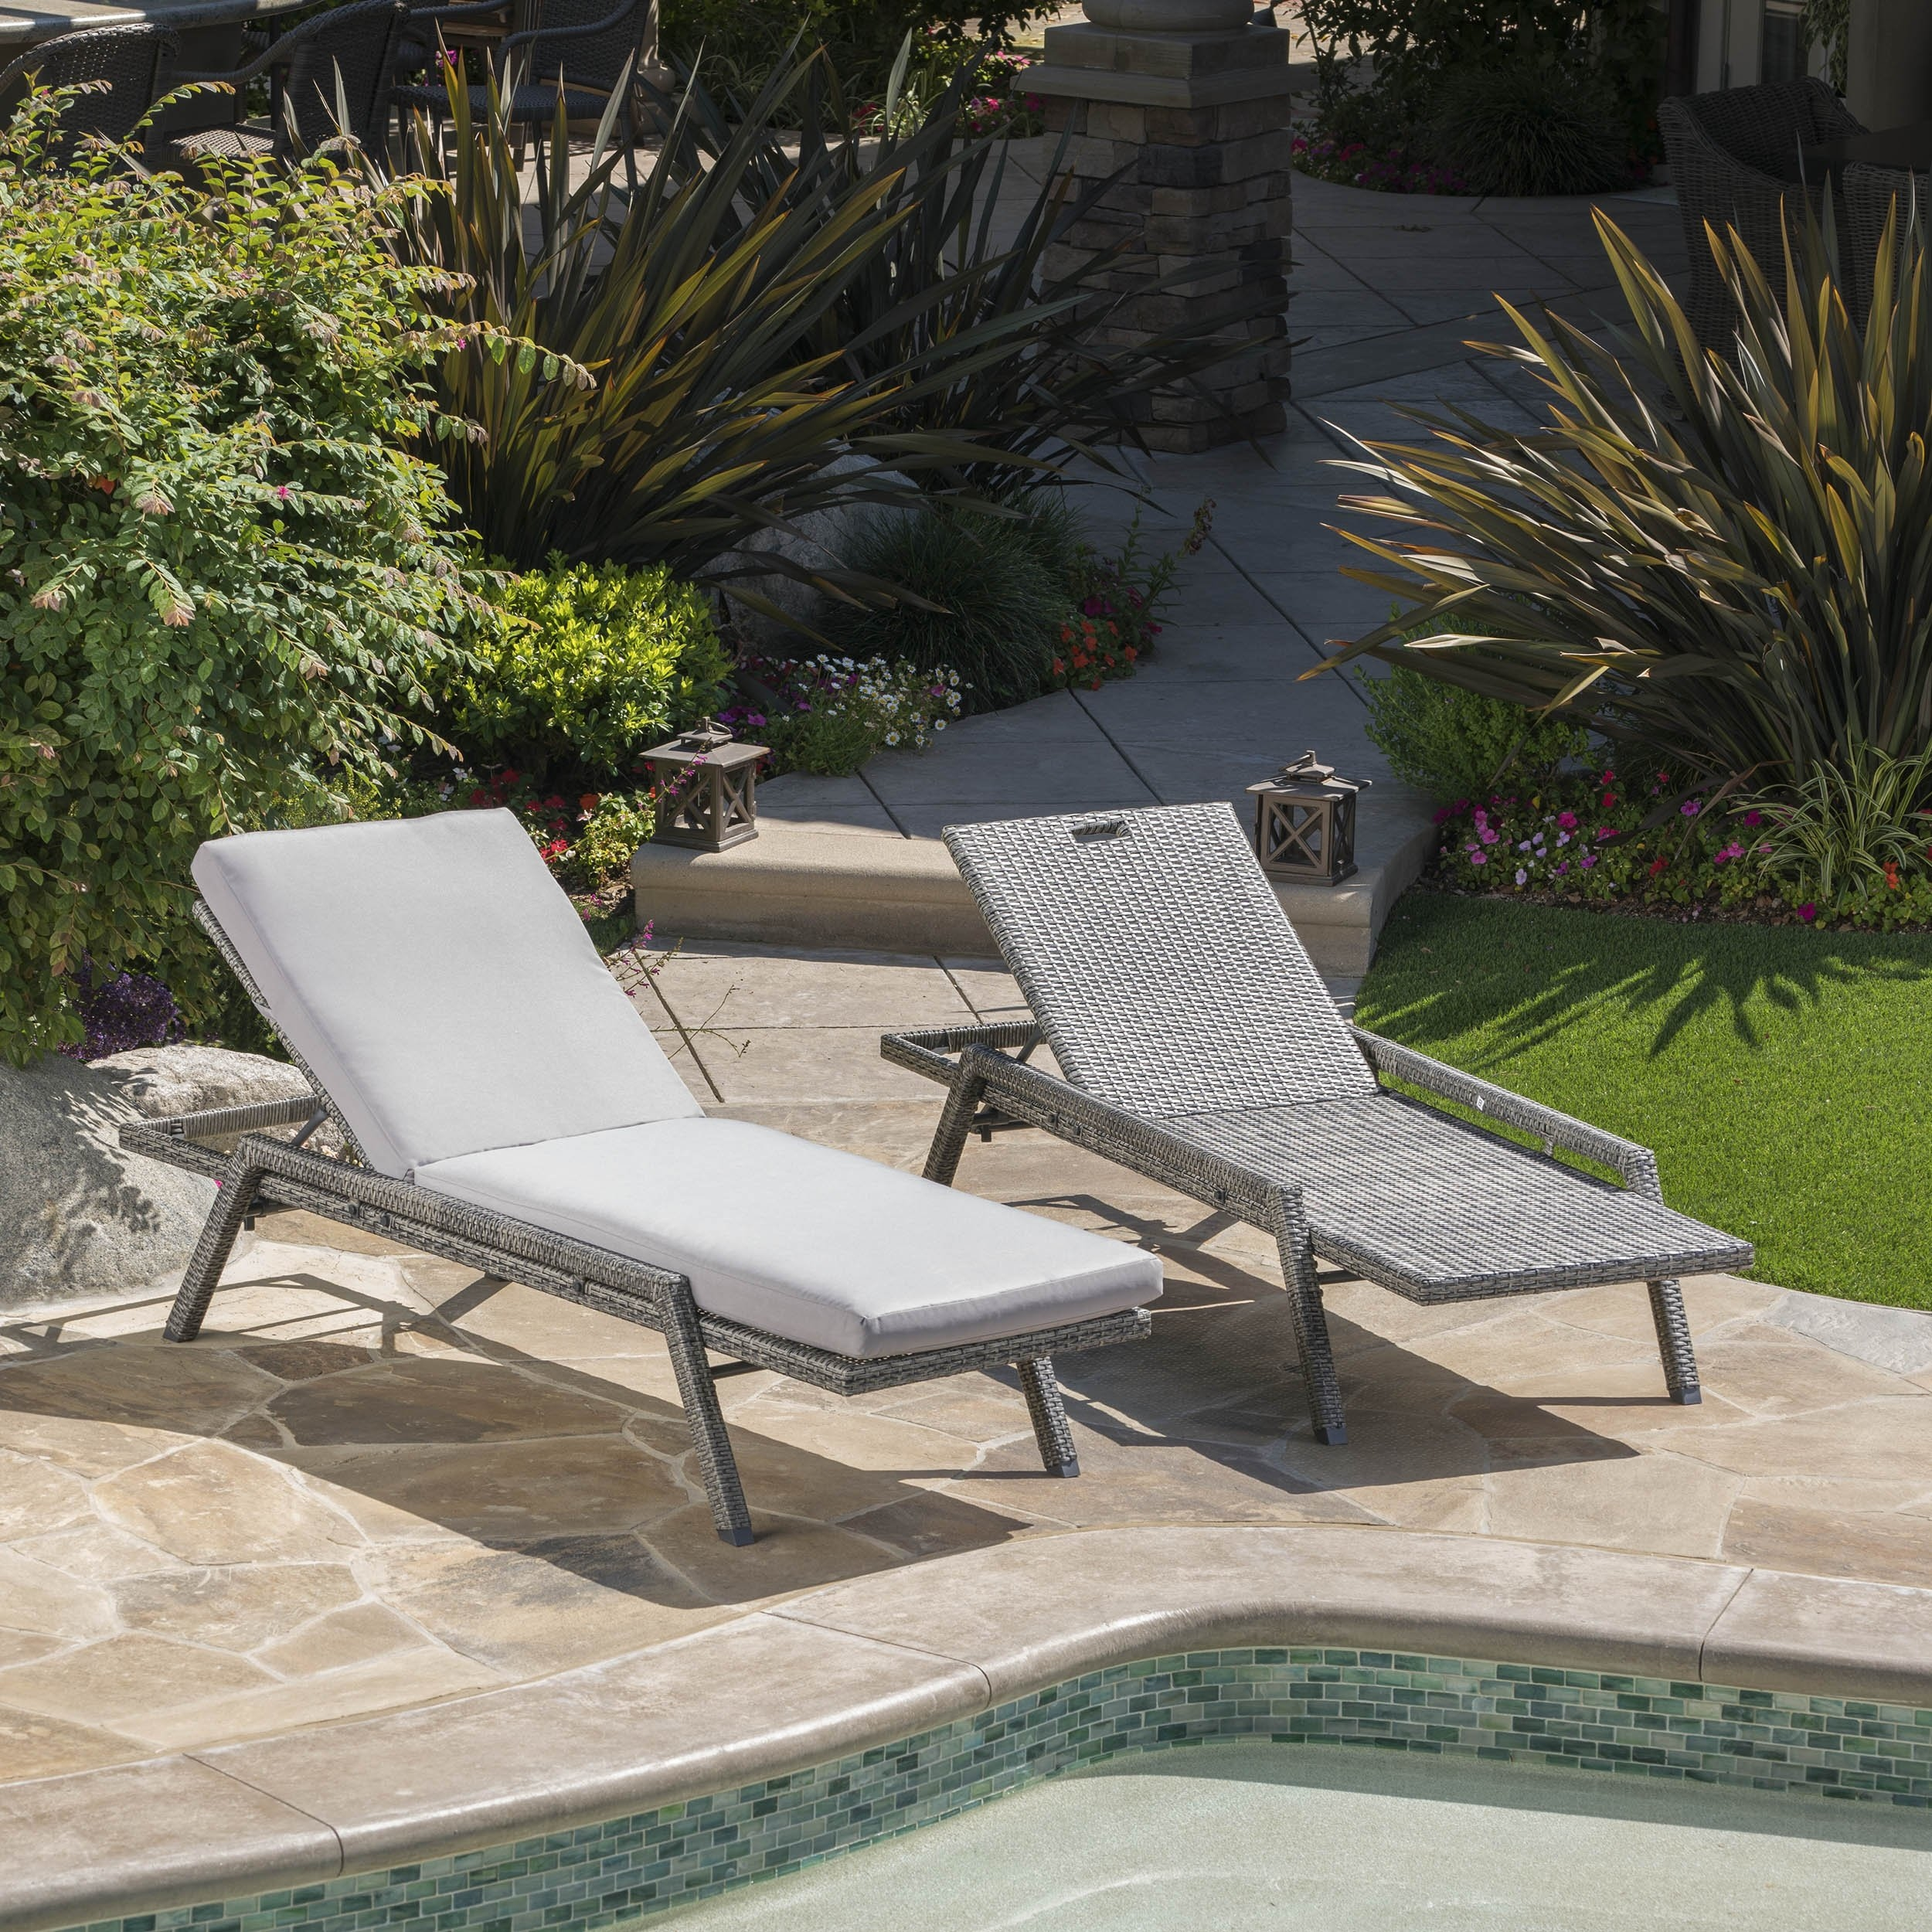 Fiora Outdoor Wicker Chaise Lounge w/ Grey Water Resistant Cushion (Set of 2) (2)